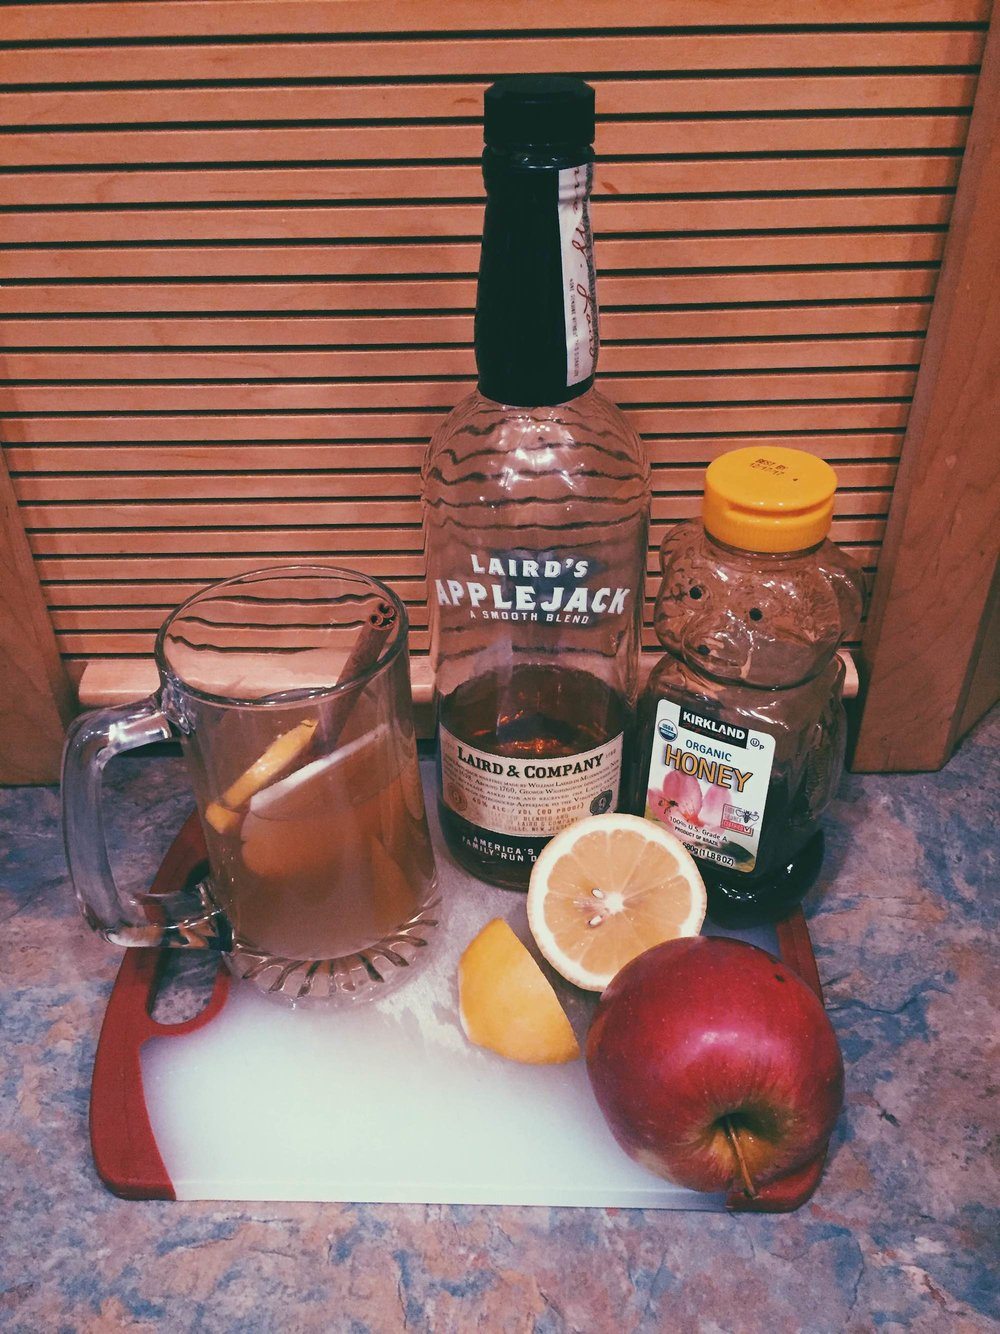 Apple-brandy hot toddies are the perfect fall drink for all occasions, from a late night watching spooky movies to an early morning football tailgate. (Megan Krementowski/The Daily Campus)